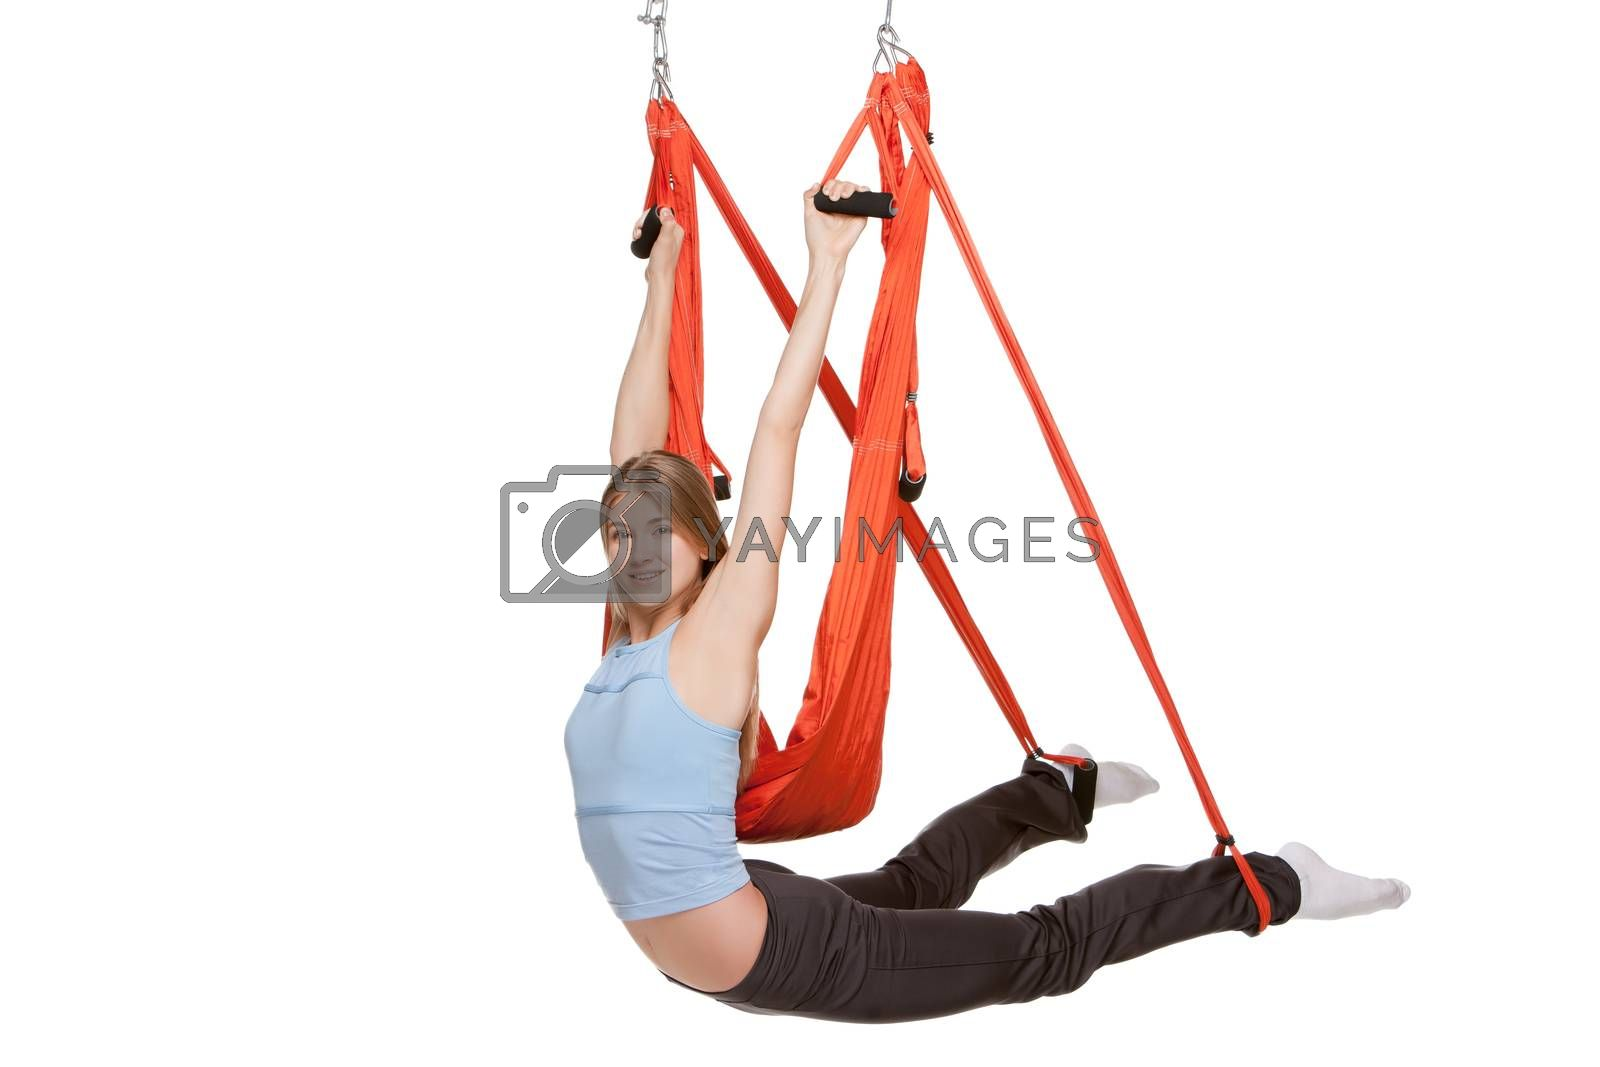 Young woman upside down doing anti-gravity aerial yoga in red hammock on a seamless white background.